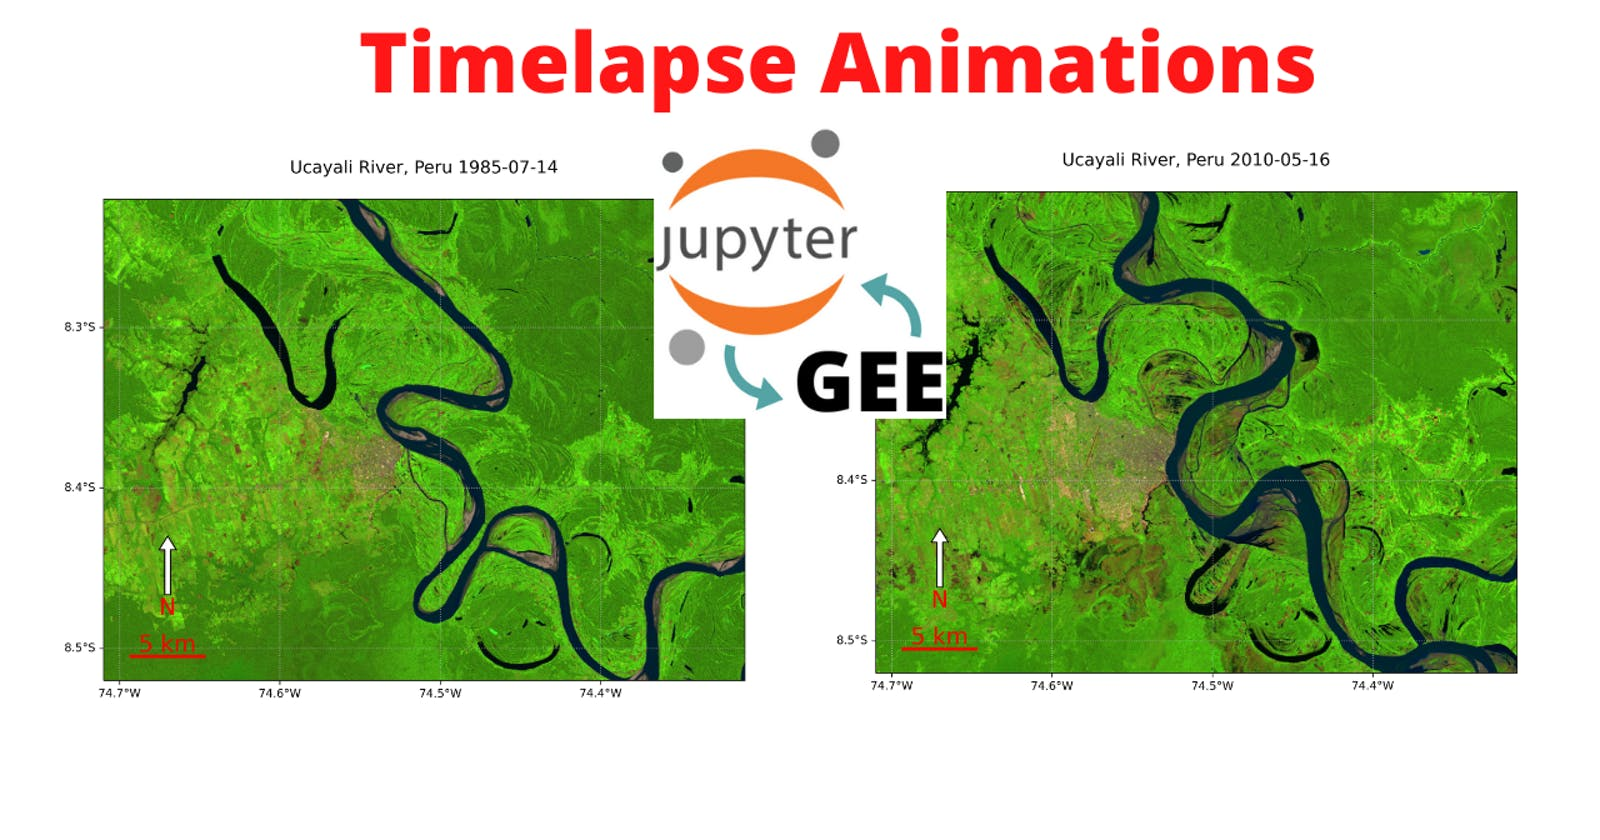 GEE Tutorial #52 - How to create timelapse animations with custom projection, scale bar, and north arrow